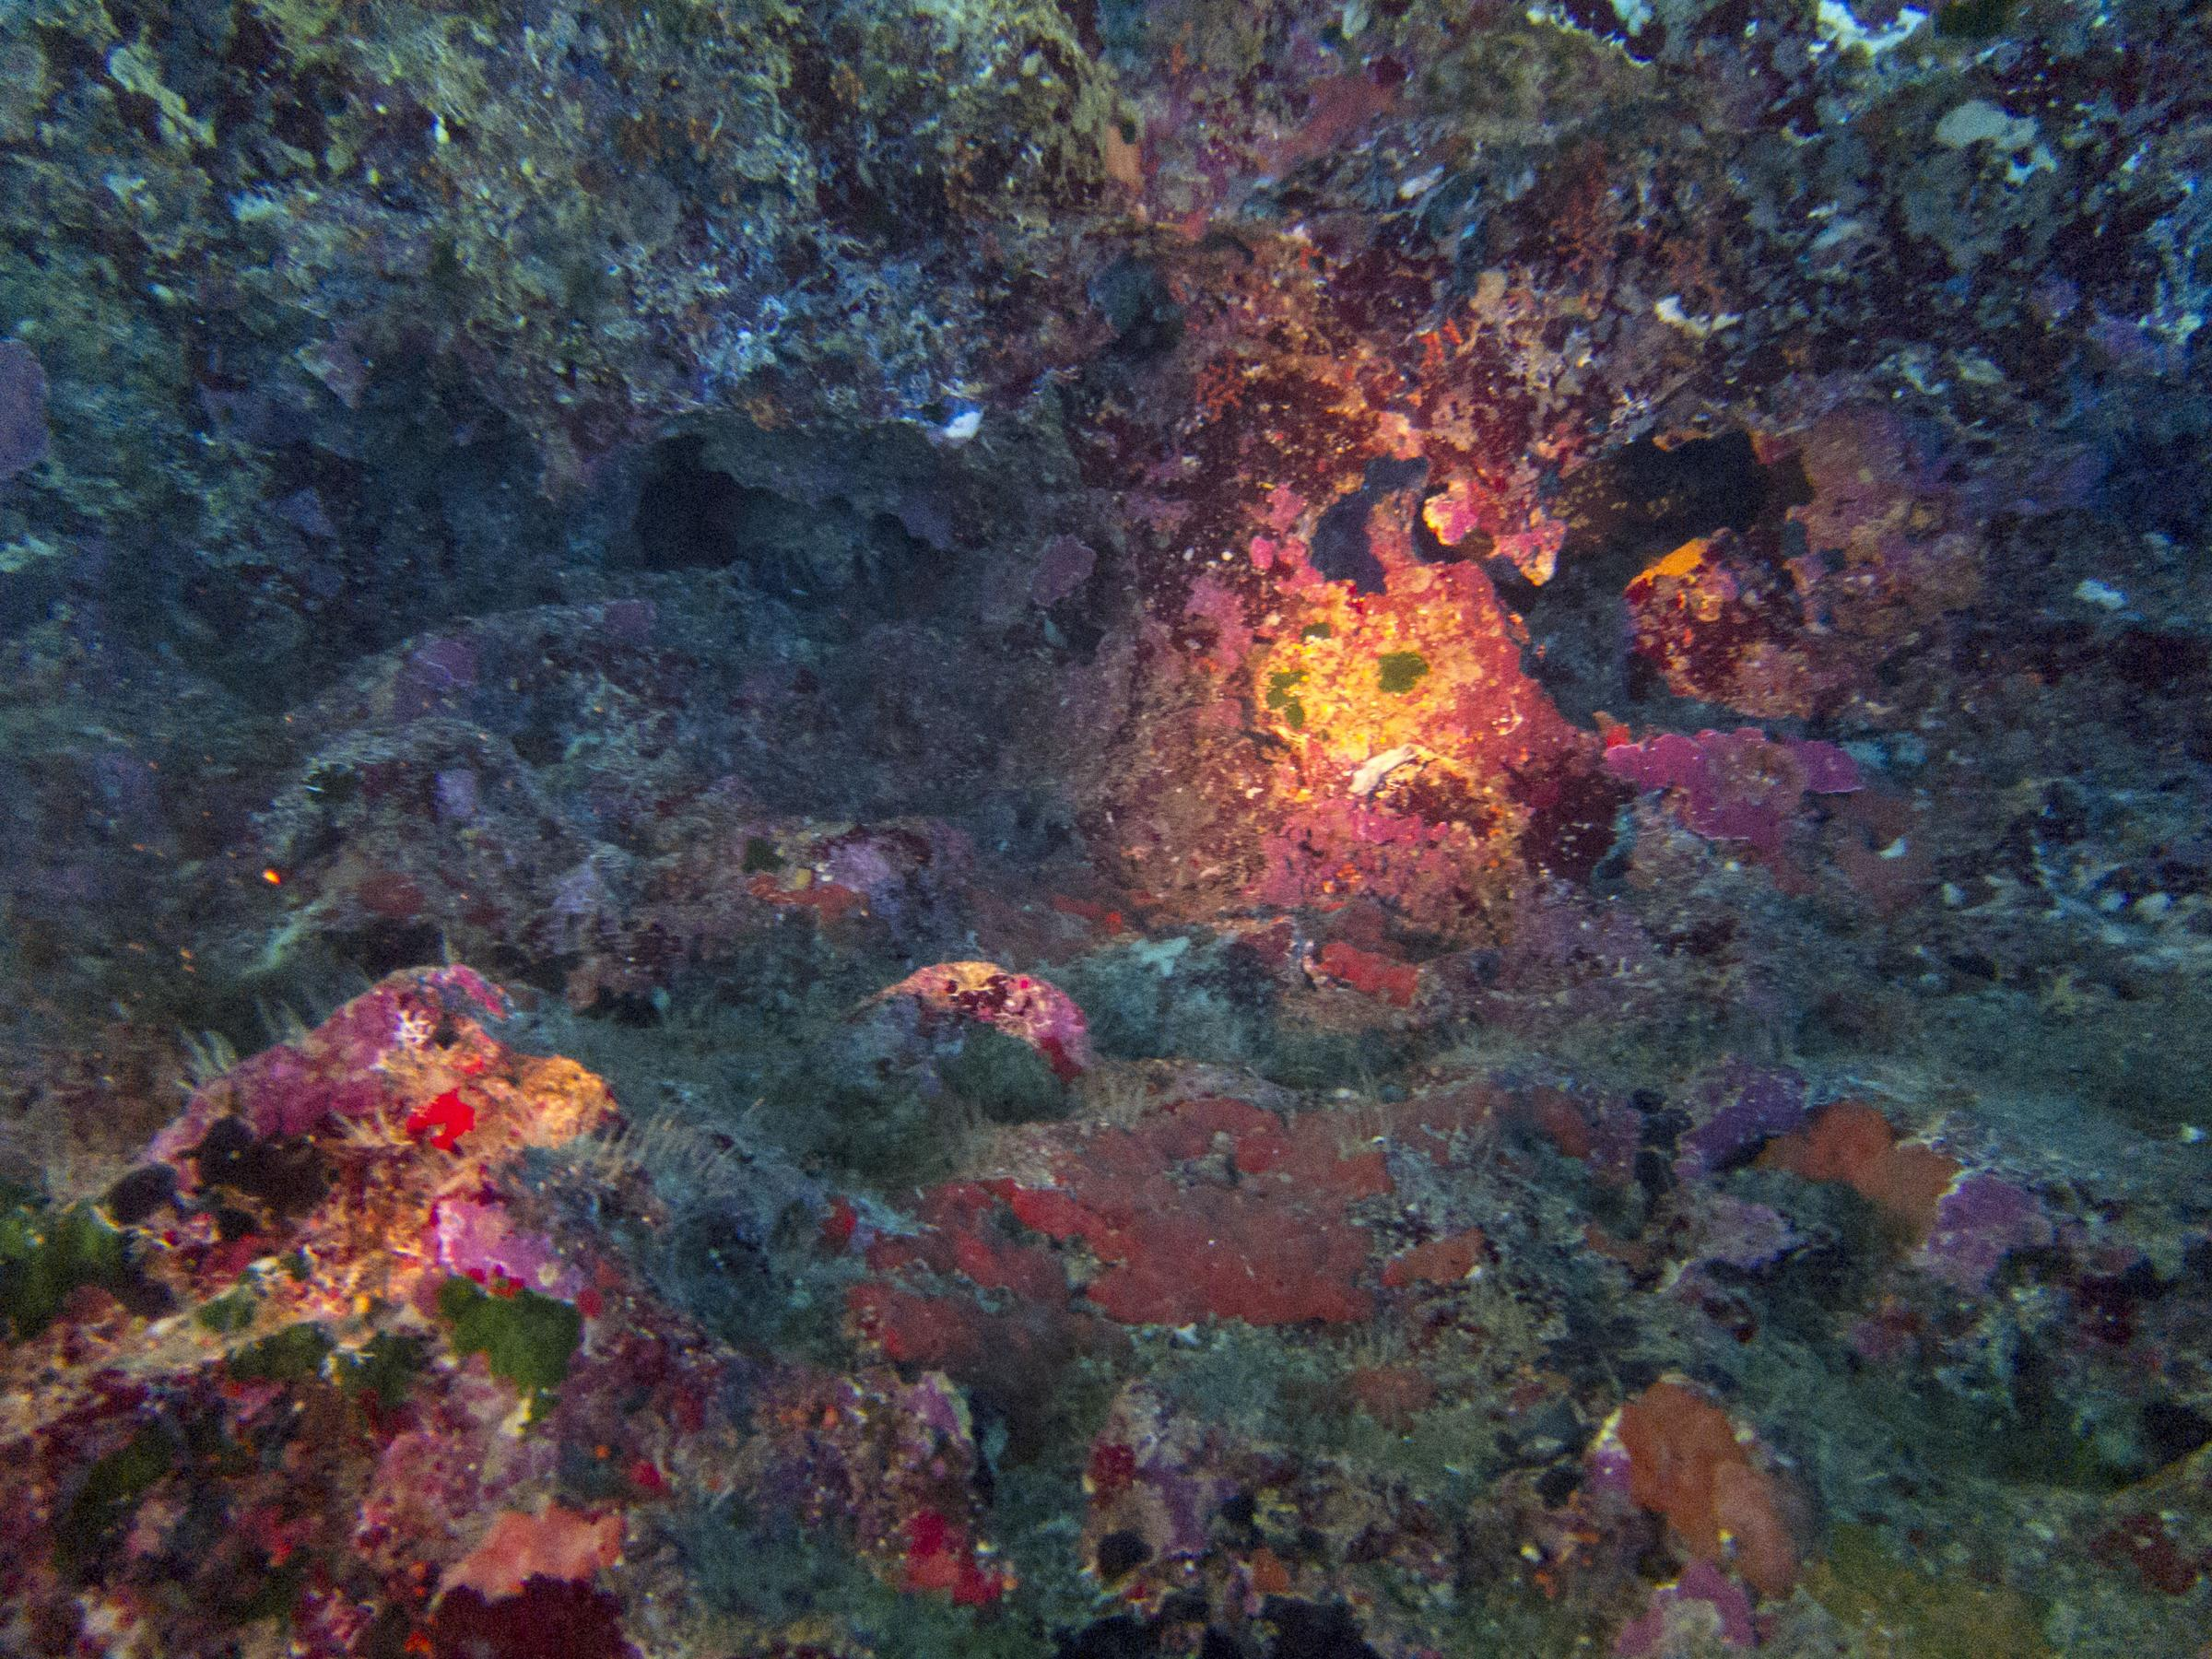 Corals inside the Santa Marija Caves